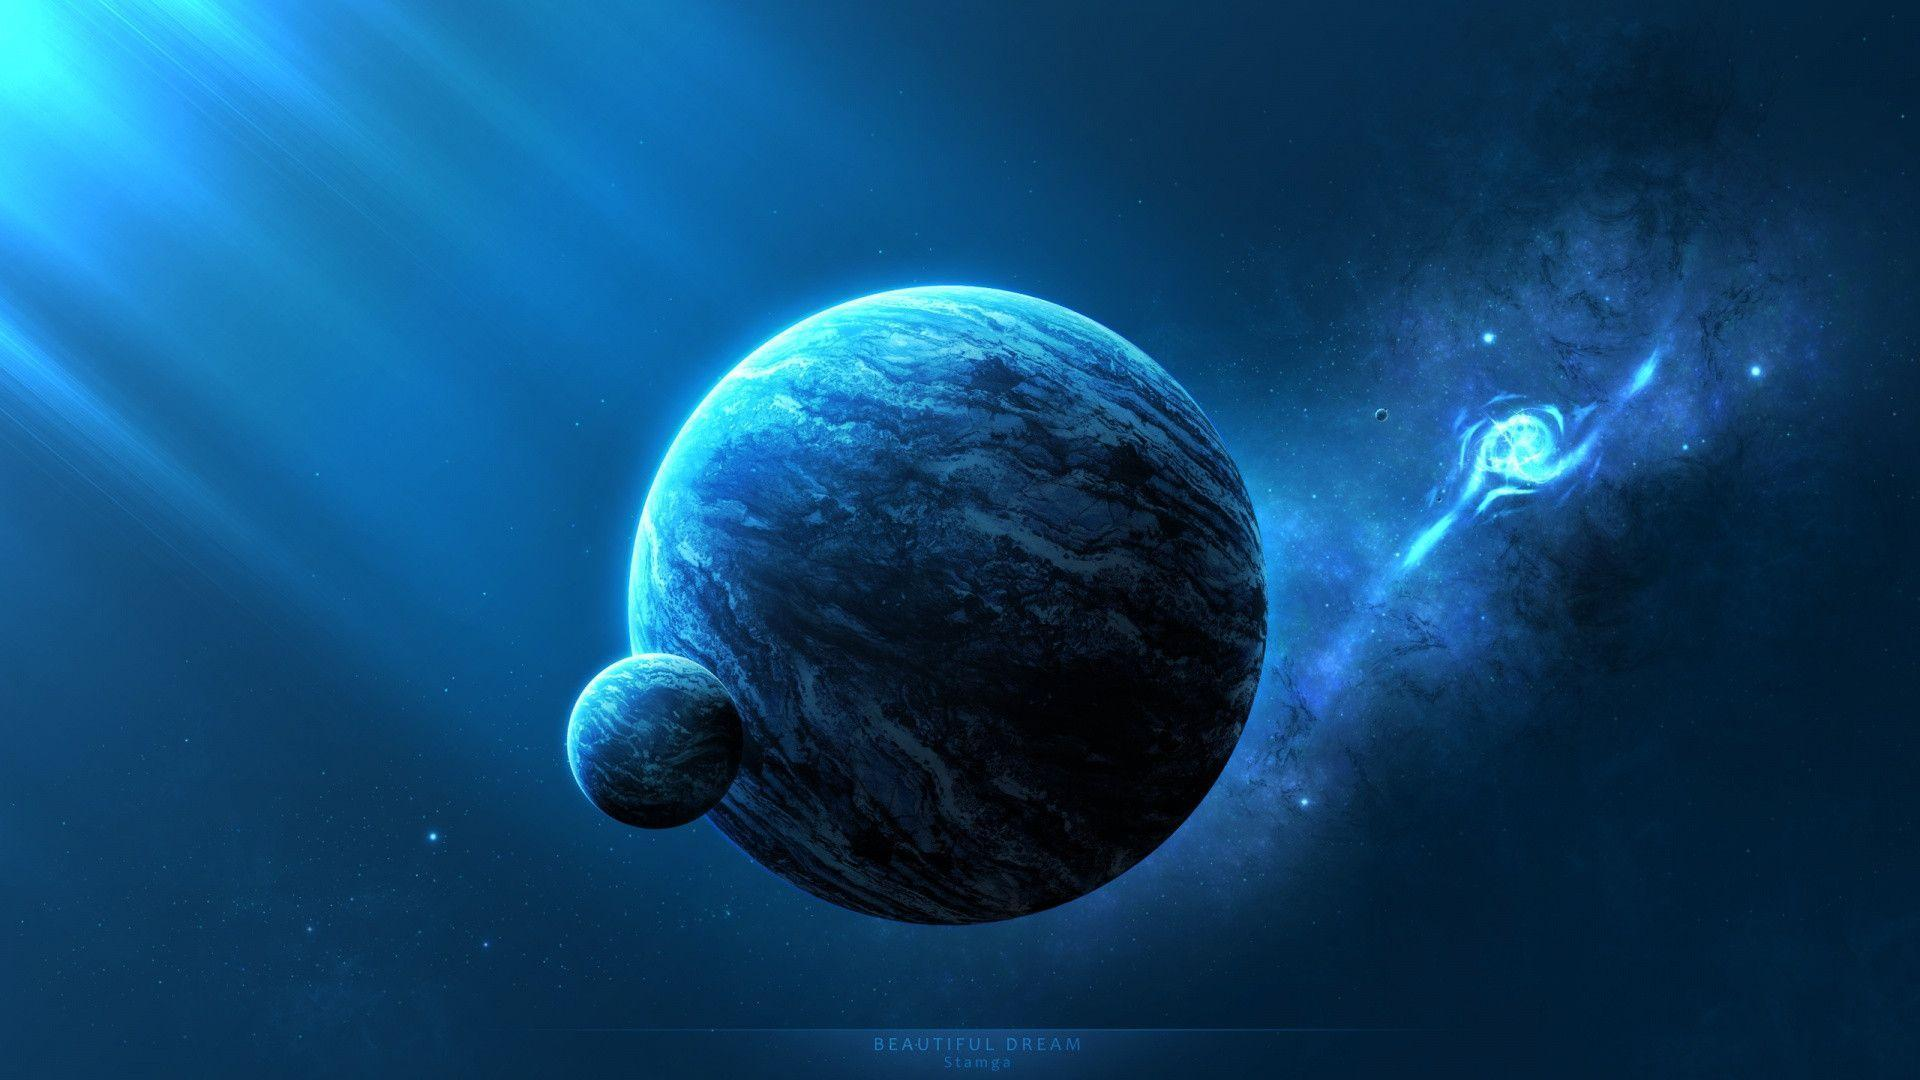 Cool Wallpapers For Pc 1080p